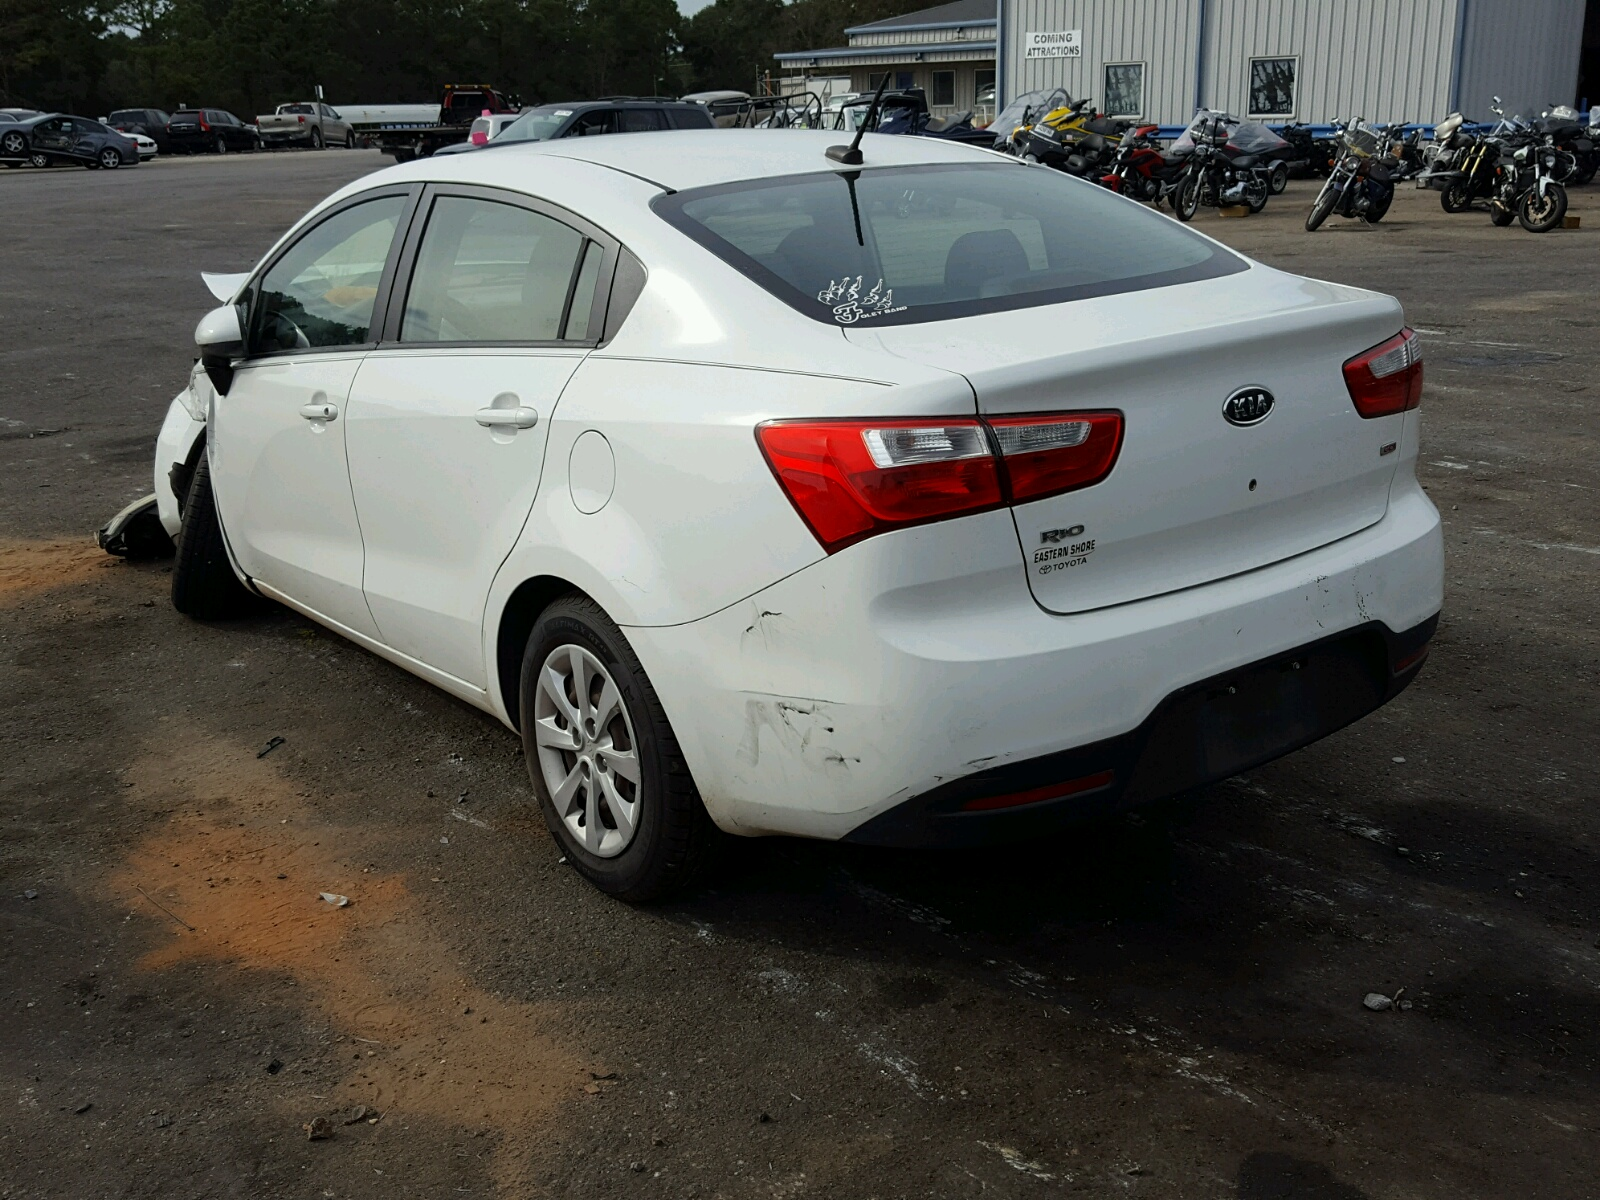 Eastern Shore Kia 2013 Kia Rio Lx 1 6l 4 In Al Mobile Knadm4a33d6097491 For Sale